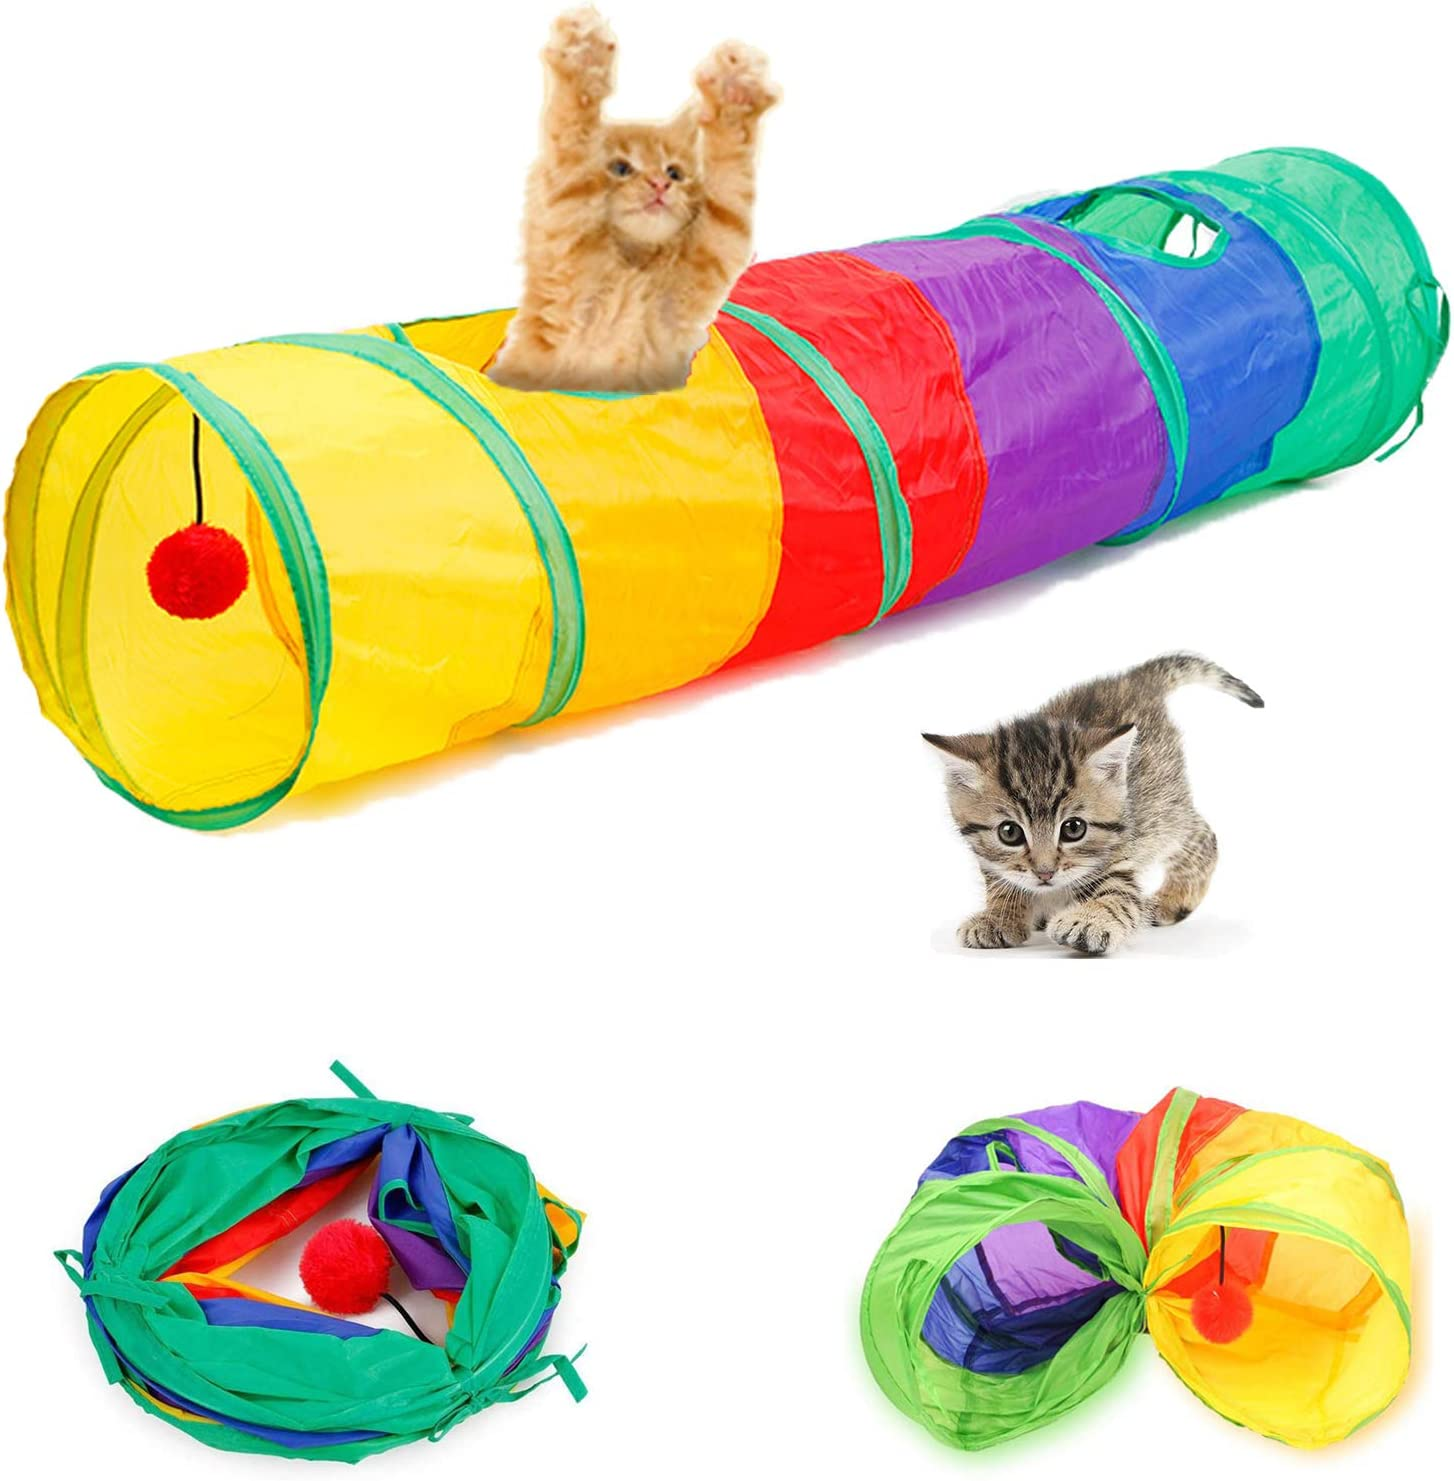 Collapsible Rainbow Cat Tunnel Special price for a limited time sale with Play Indoor for I Ball Cats